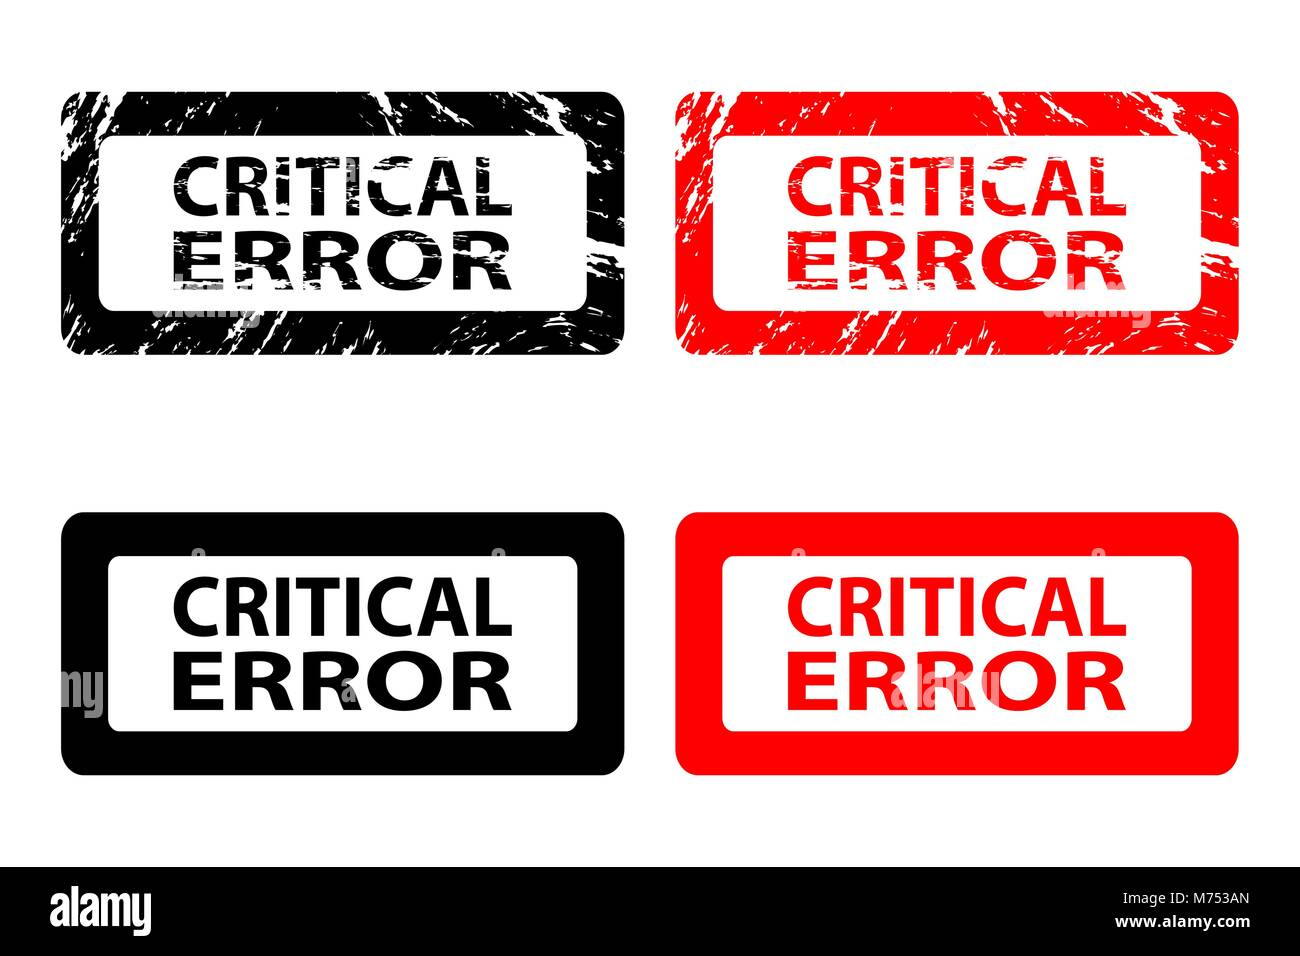 Critical error  - rubber stamp - vector - black and red - Stock Image